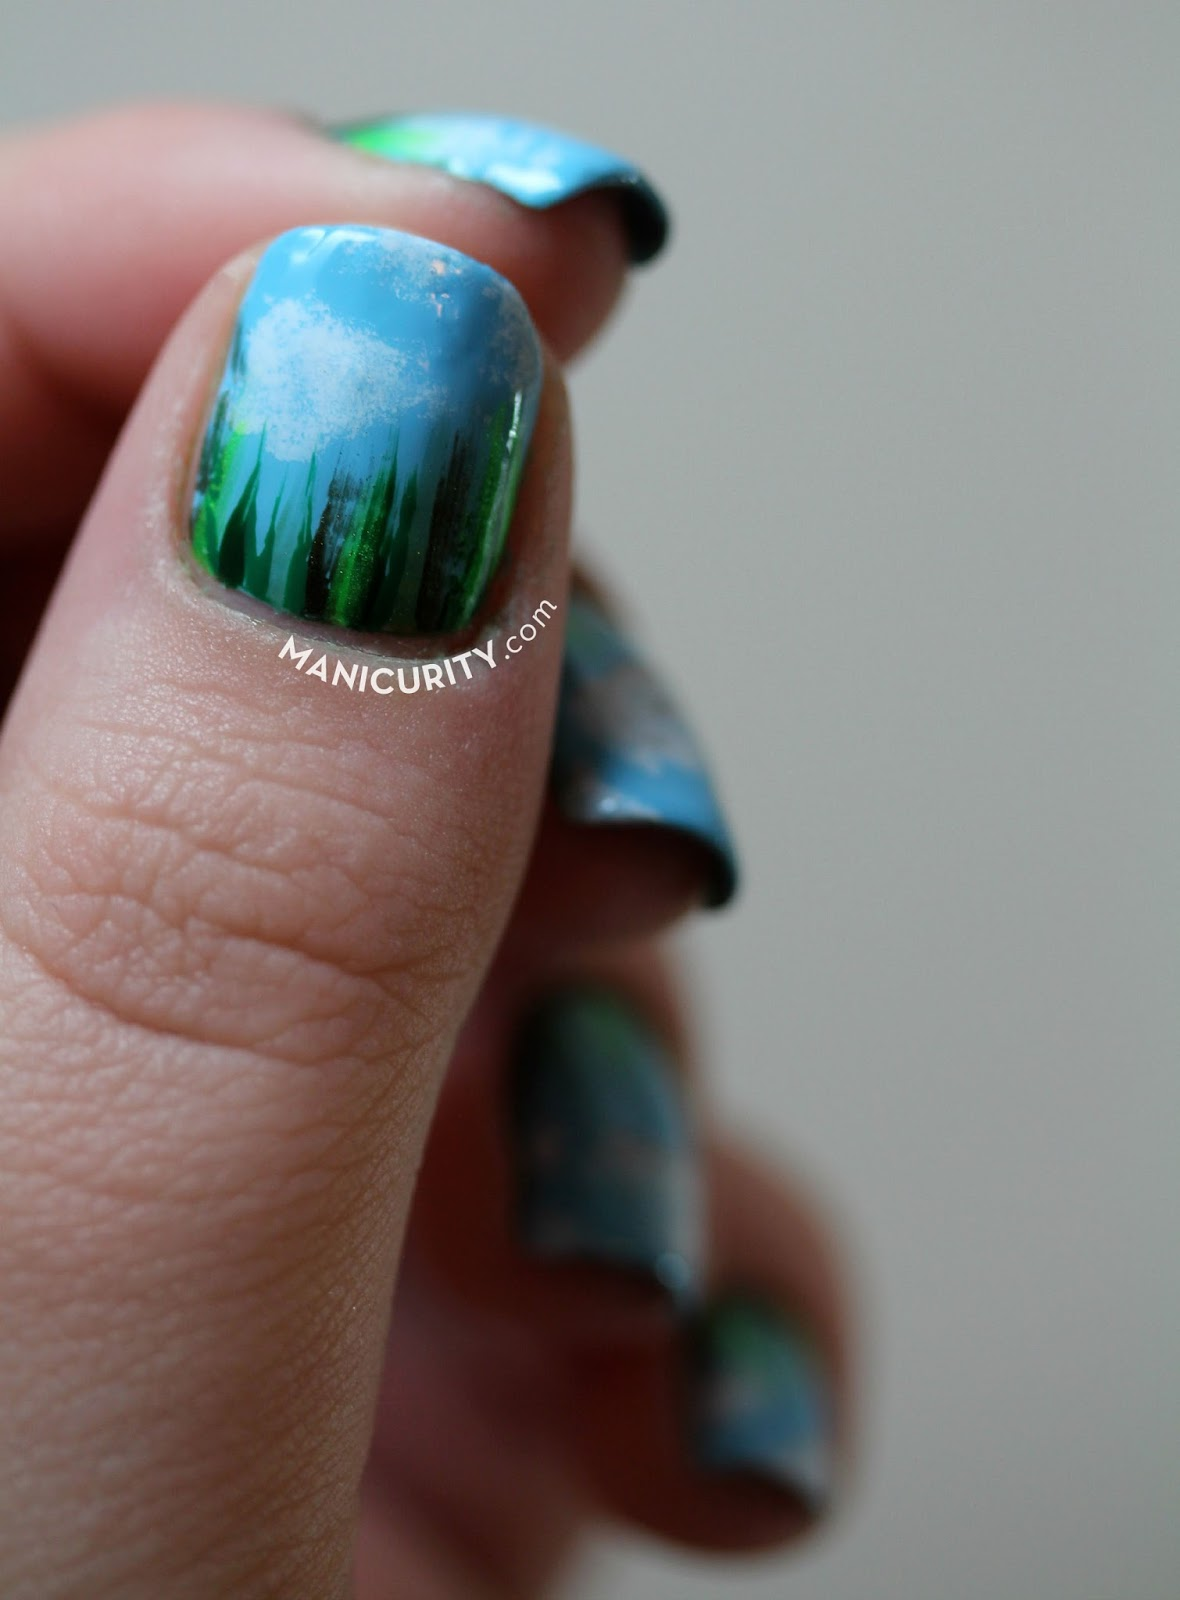 The Digit-al Dozen x #ThrowbackThursday Re-Do: Grassy Field Freehand 'Waterfall' Nail Art | Manicurity.com